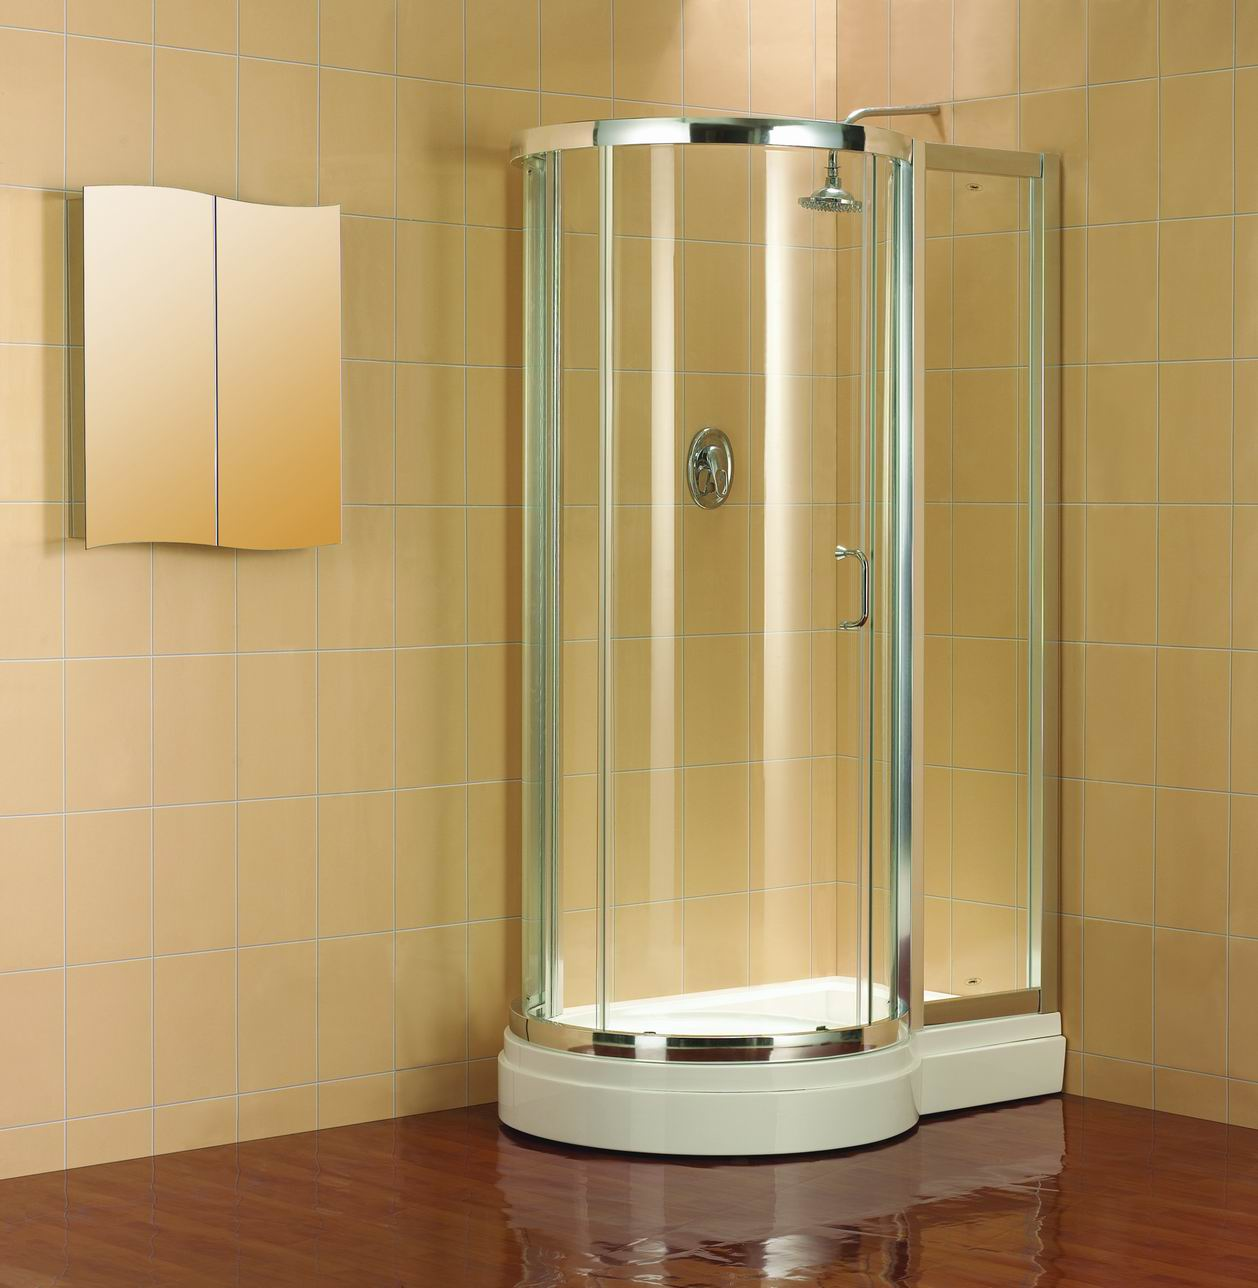 Are Quadrant Shower Enclosures the Best Choice For Compact Bathrooms ...